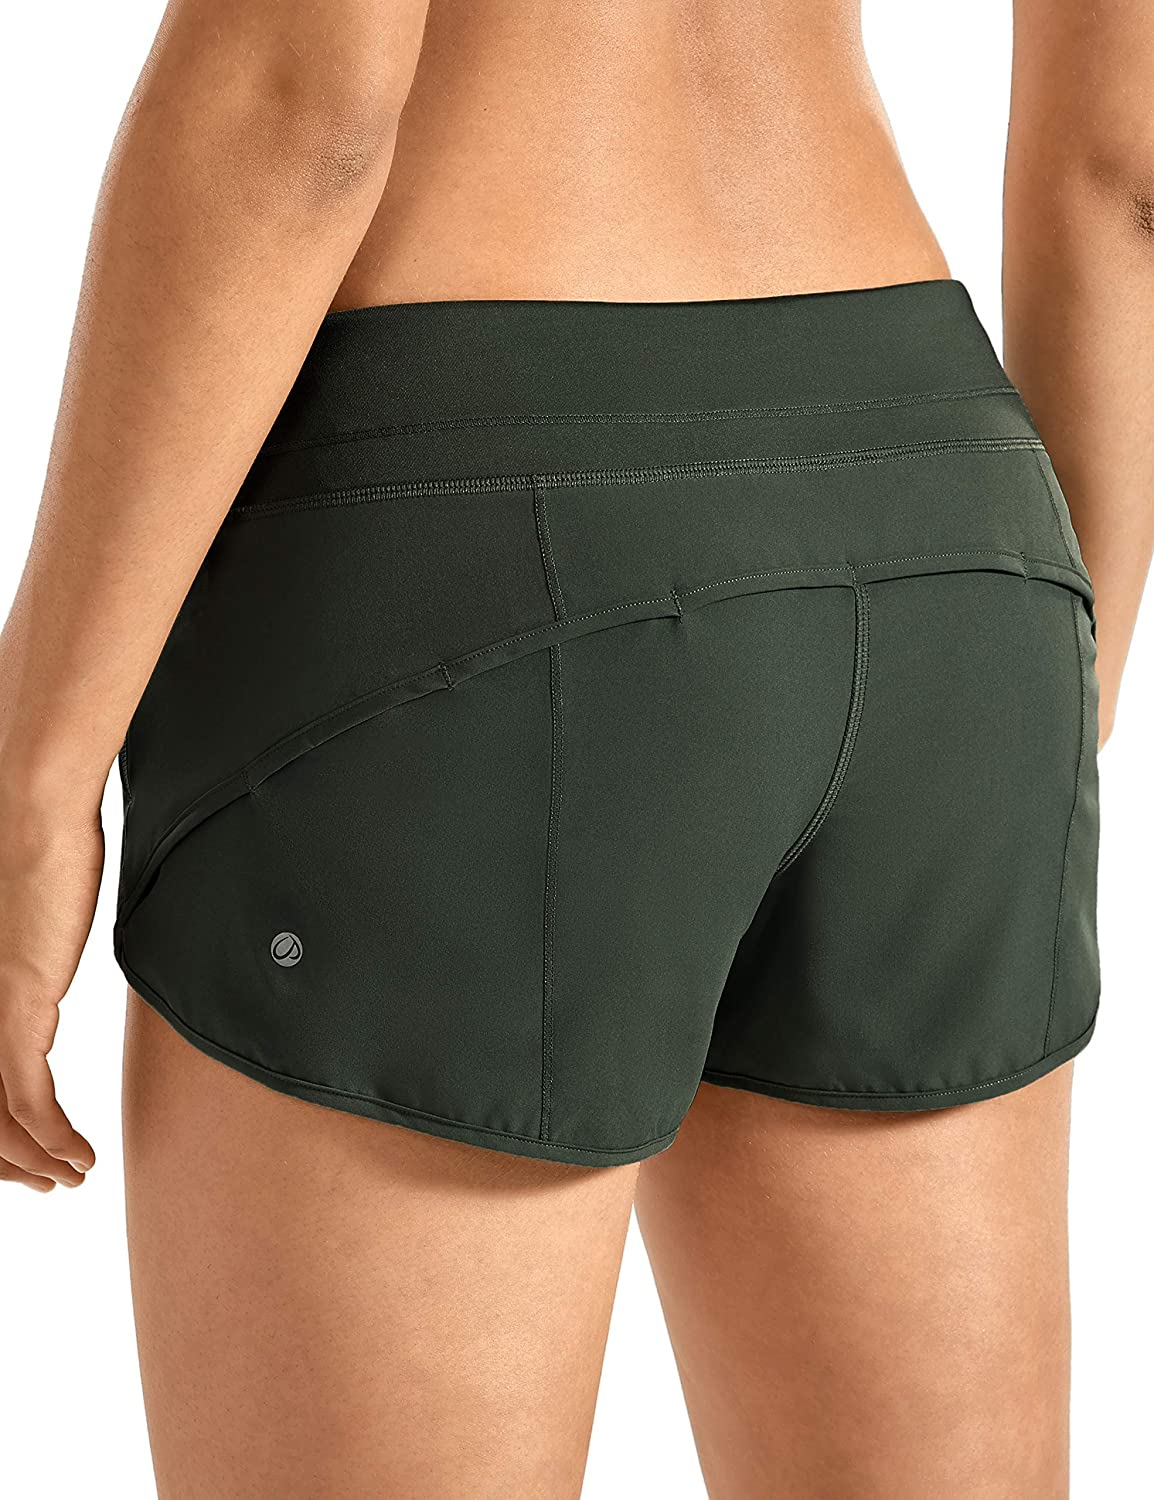 CRZ YOGA Women's Quick-Dry Workout Sports Active Running Shorts - 2.5 Inches